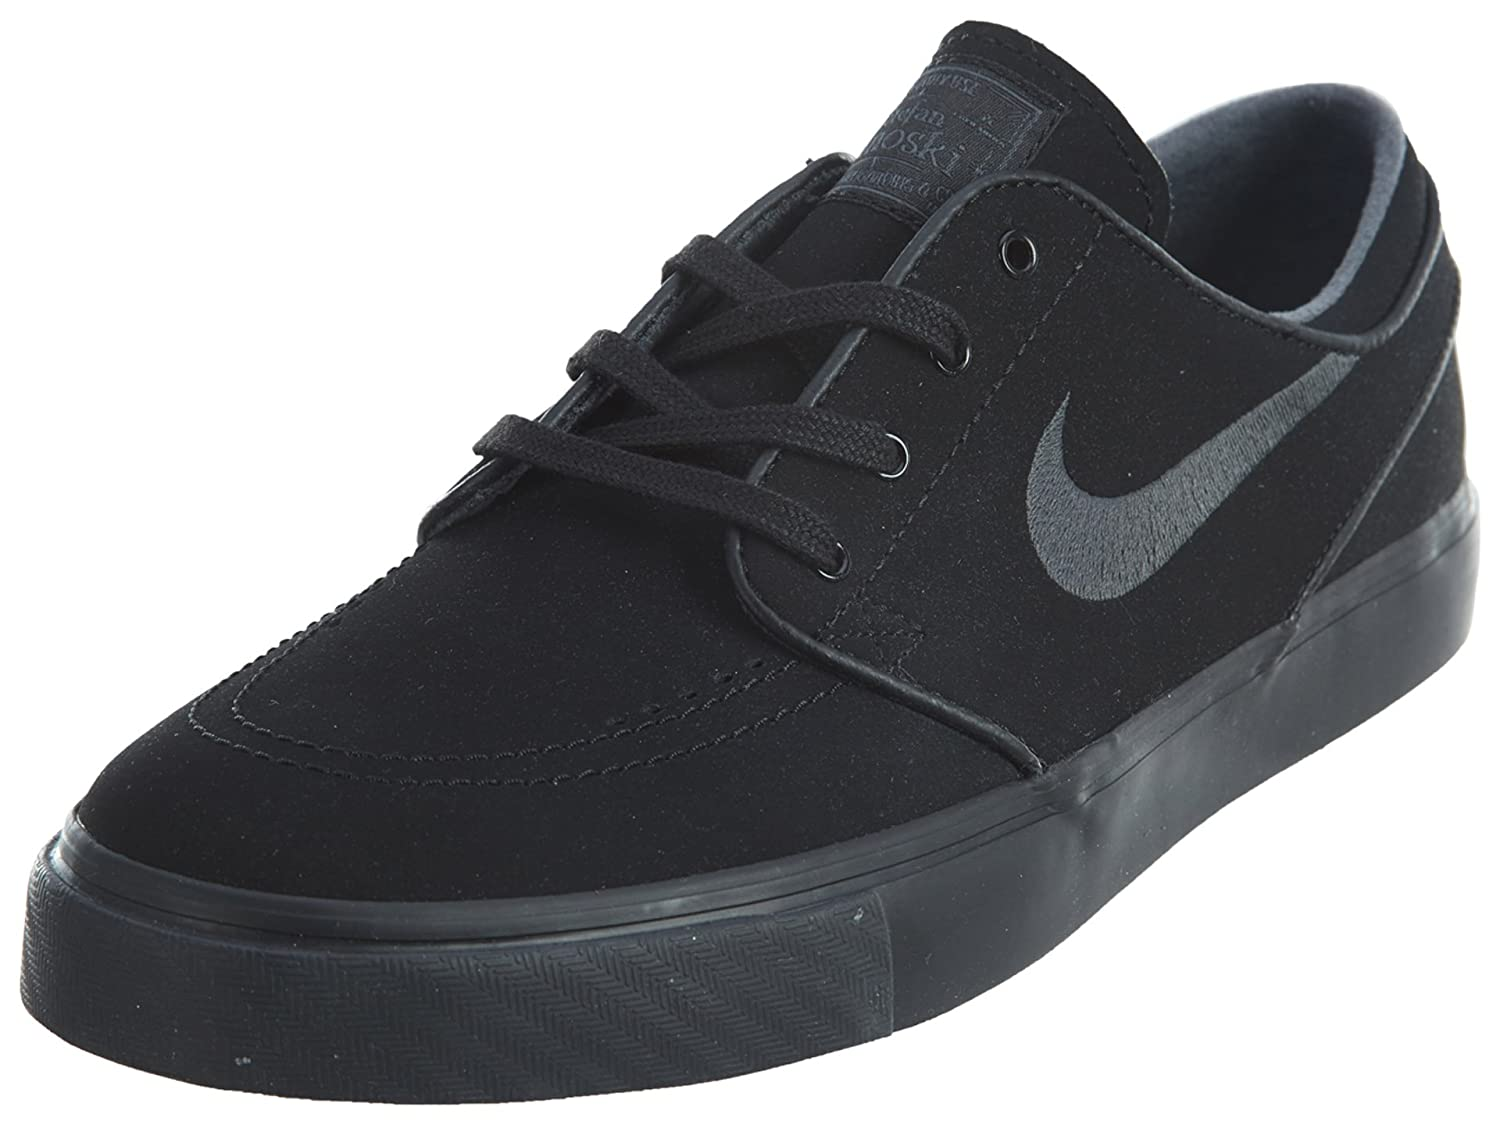 zaoszczędź do 80% Hurt bliżej na NIKE Mens SB Zoom Stefan Janoski Zoom Air Skateboarding Shoes Black 5  Medium (D)